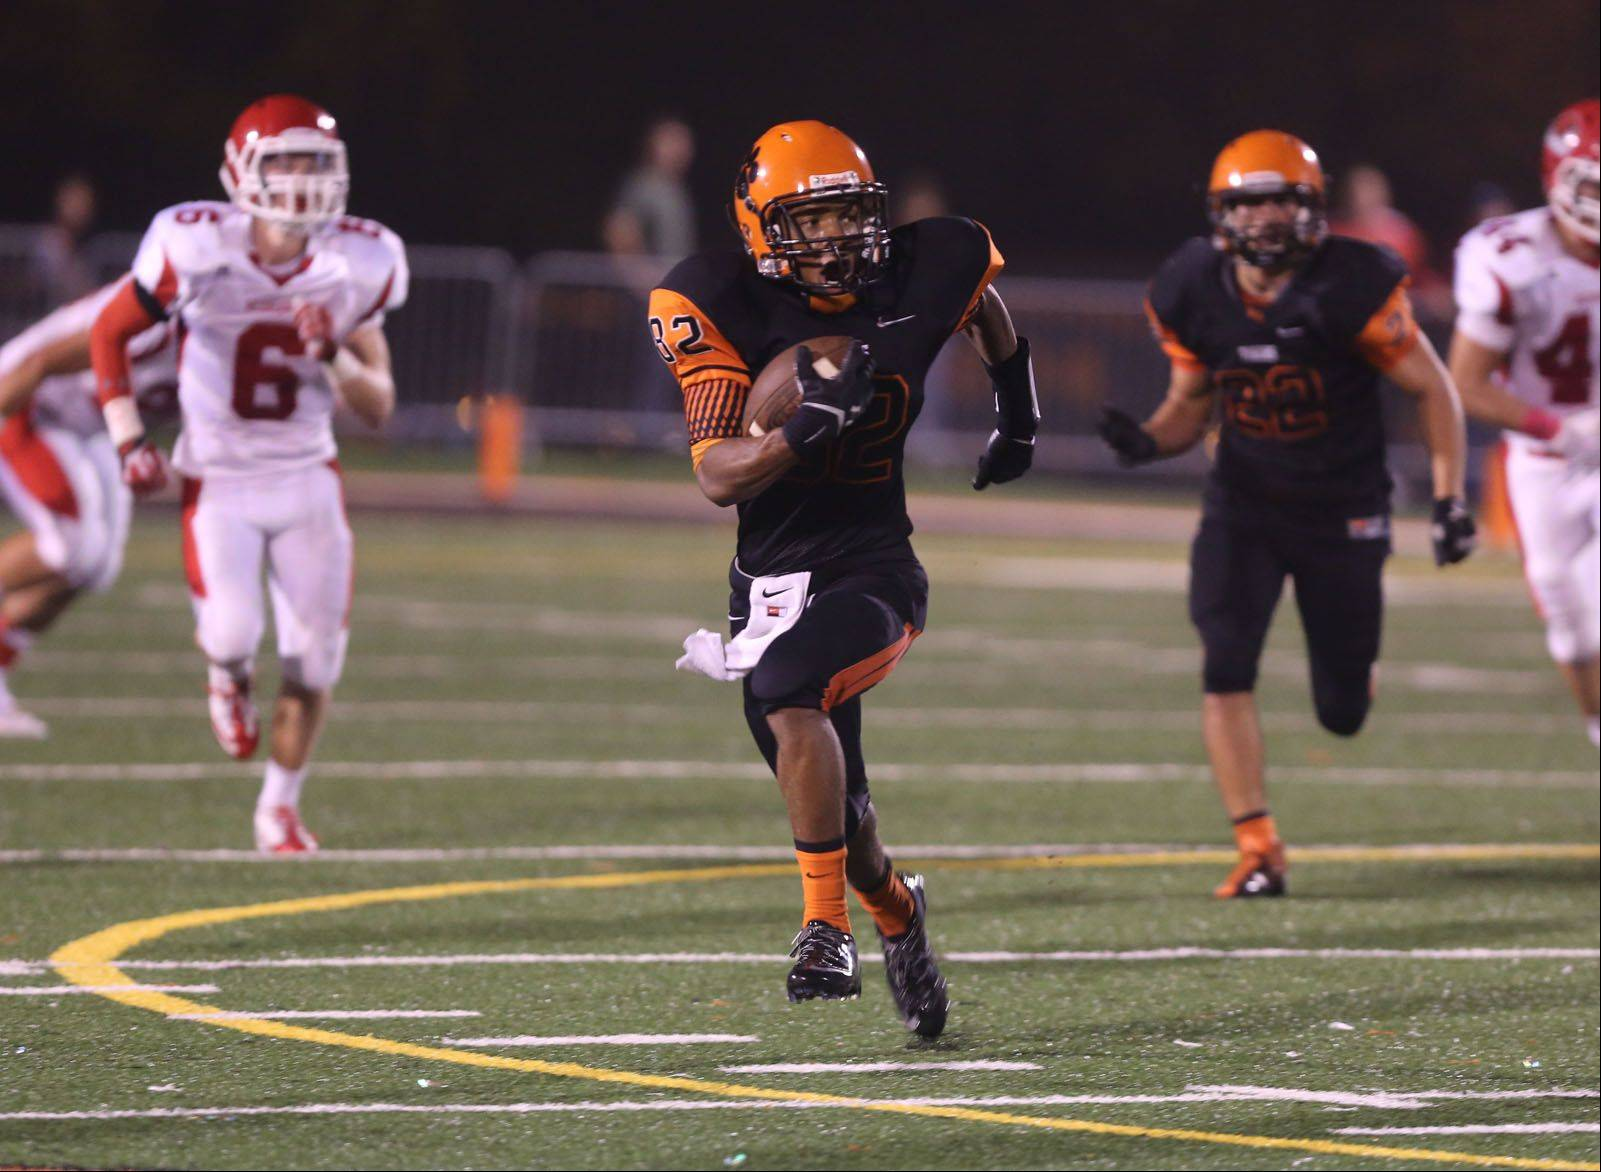 Wheaton Warrenville South's Keishawn Watson returns a punt against Naperville Central Friday night.